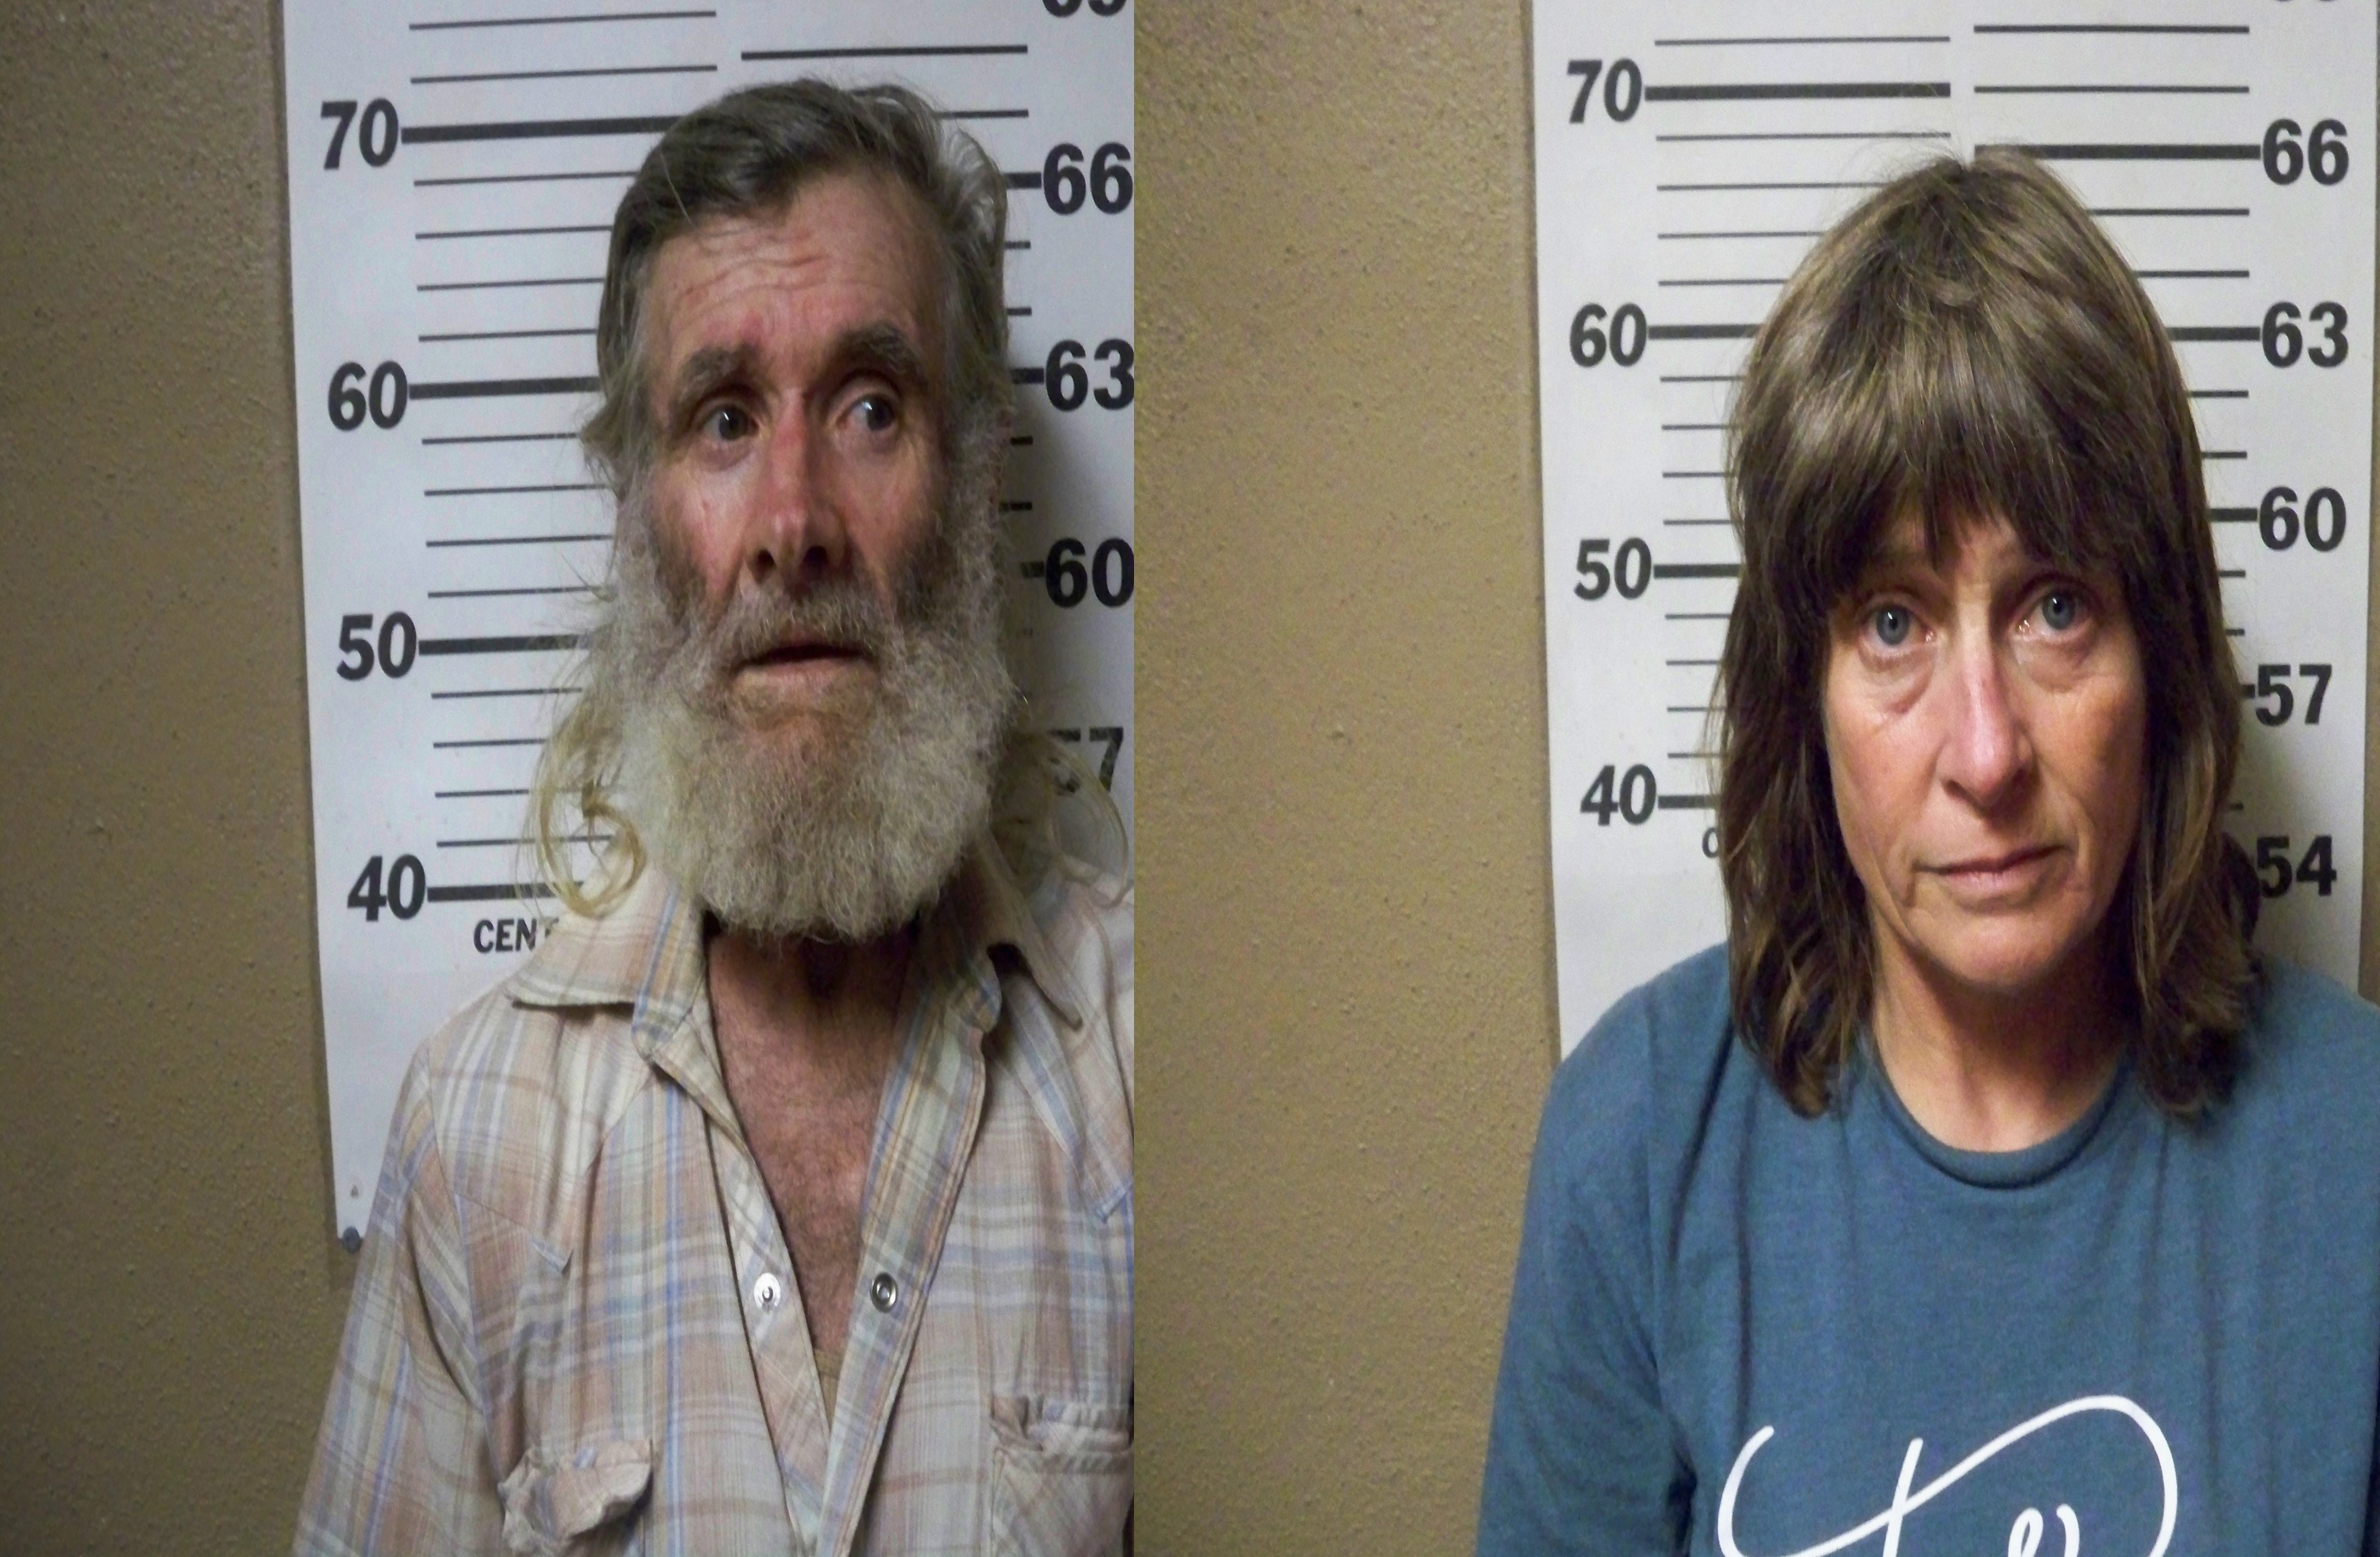 SEARCH FOR ILLEGAL DRUGS AT MCLEANSBORO HOME LEADS TO TWO ARRESTS